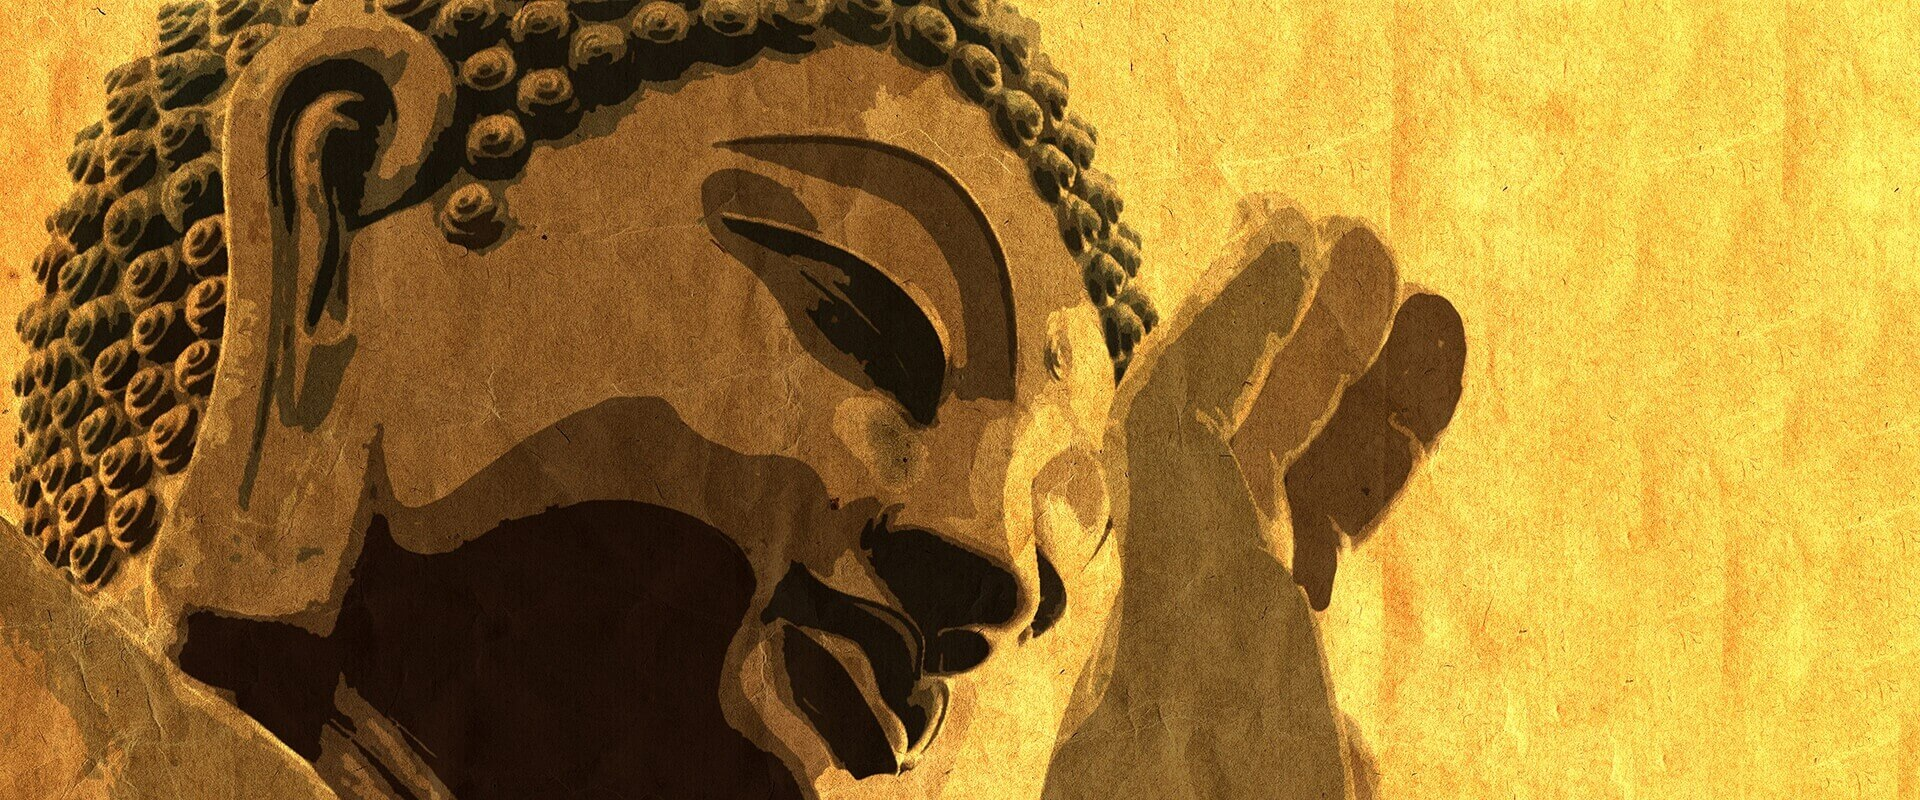 Buddha Paintings — Large Size Art | Buy Posters, Frames, Canvas, Digital Art & Large Size Prints